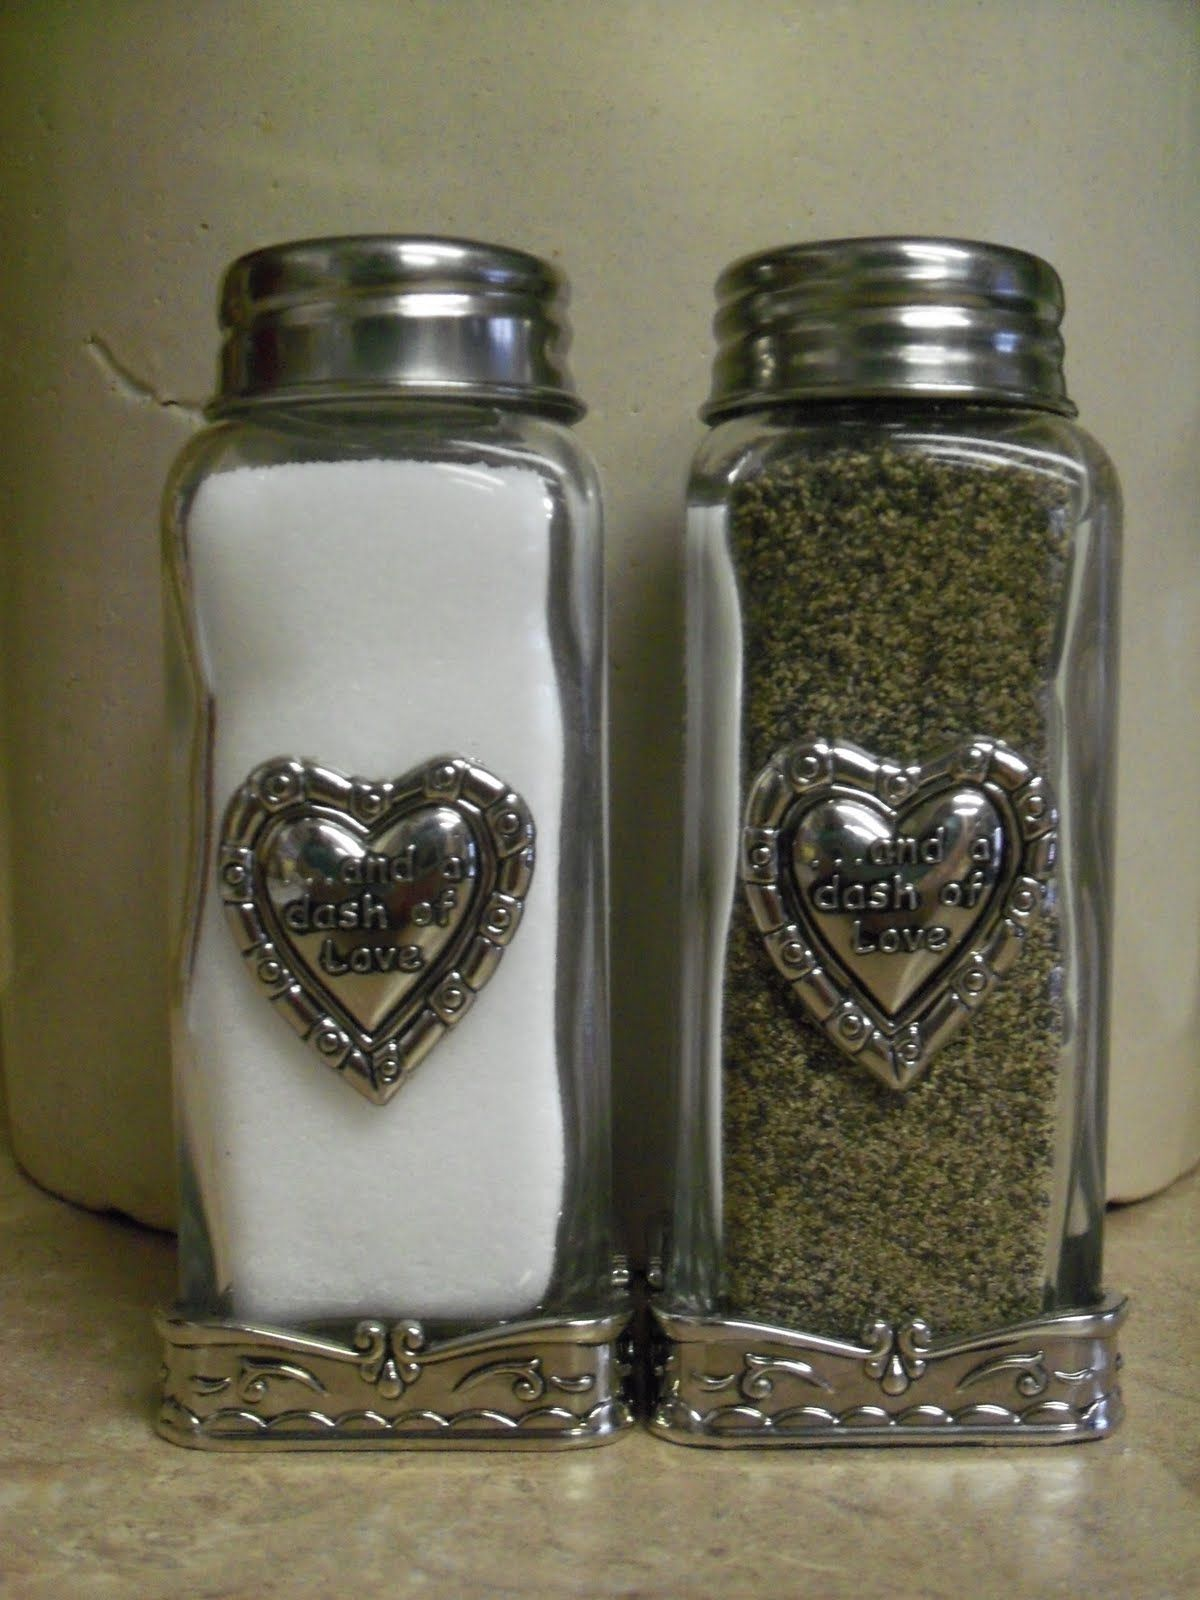 My favorite scene from Fireproof was the Salt and Pepper Shaker